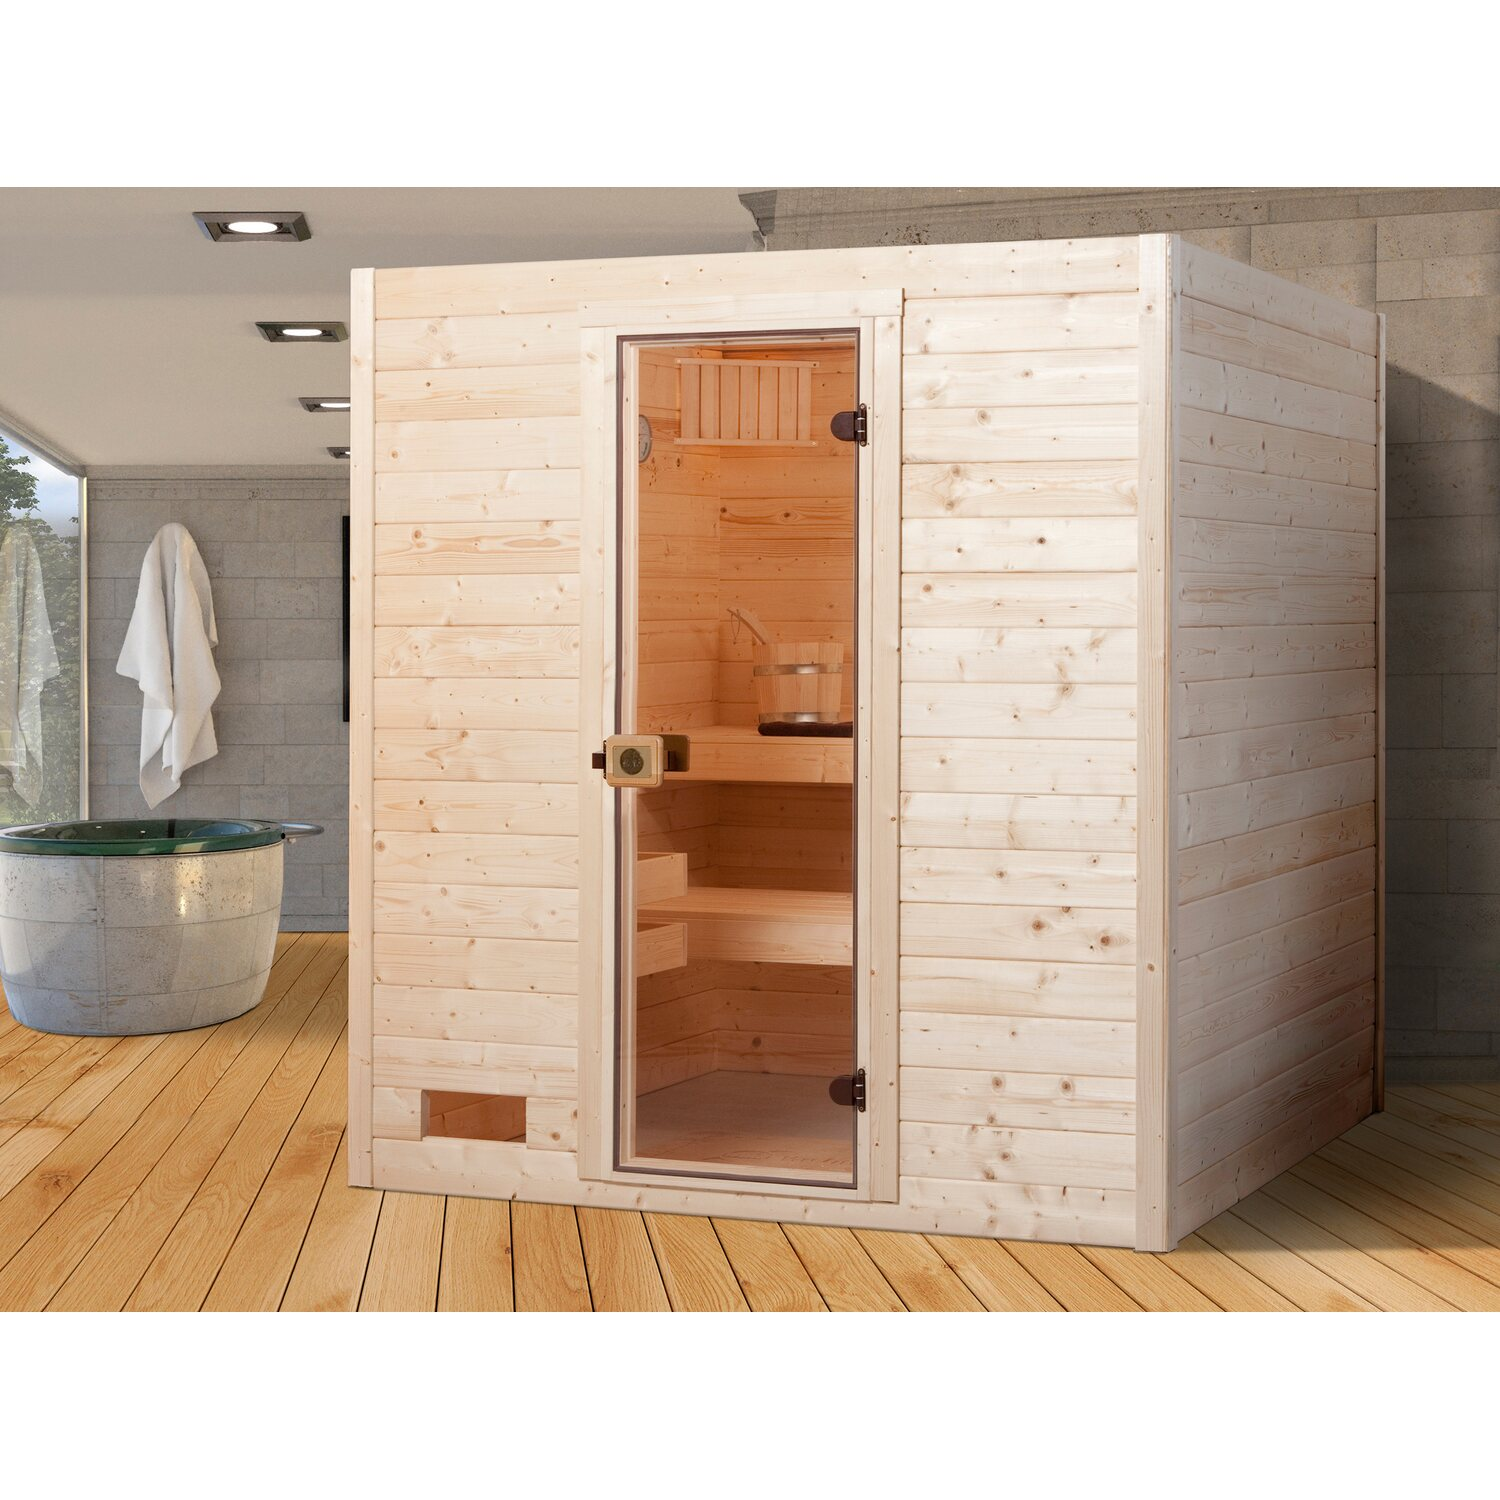 weka massivholz sauna 537 gr 2 mit glast r ohne ofen kaufen bei obi. Black Bedroom Furniture Sets. Home Design Ideas